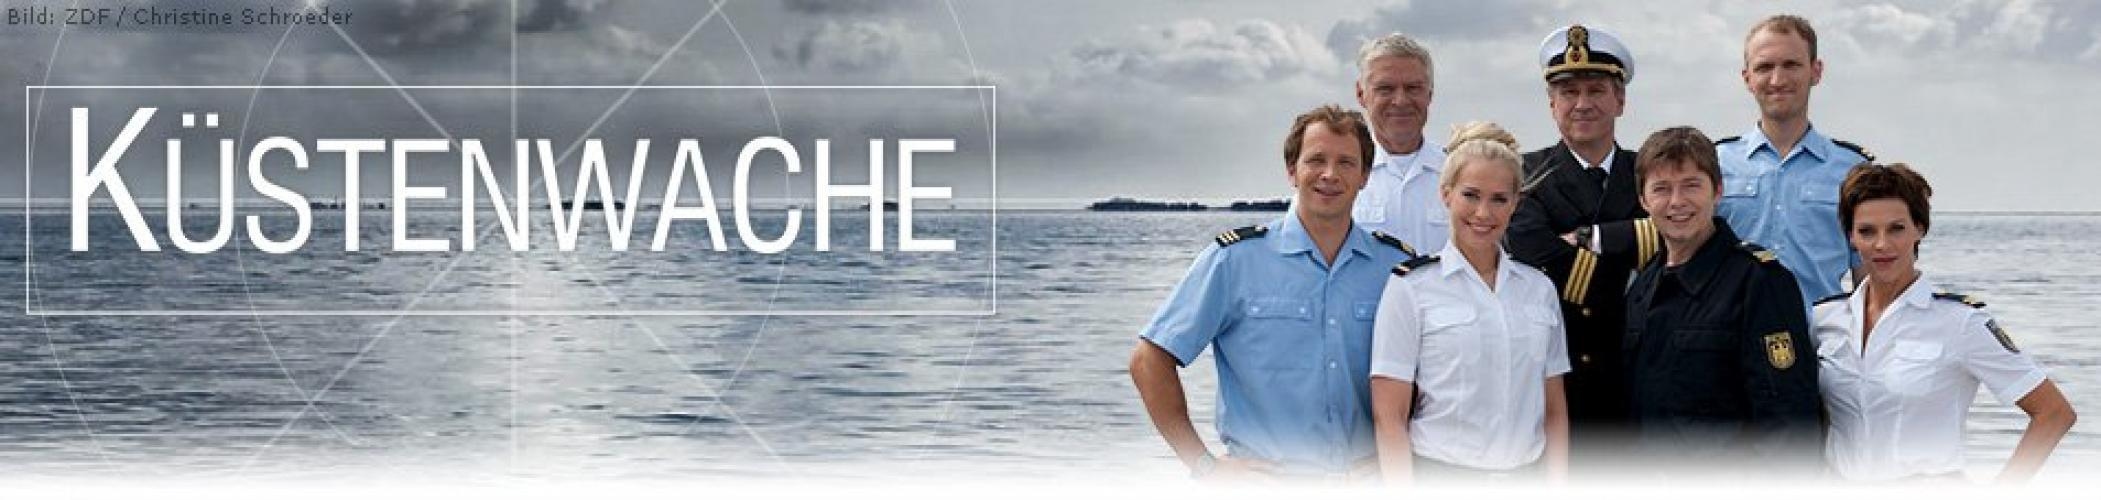 Coast Guard next episode air date poster